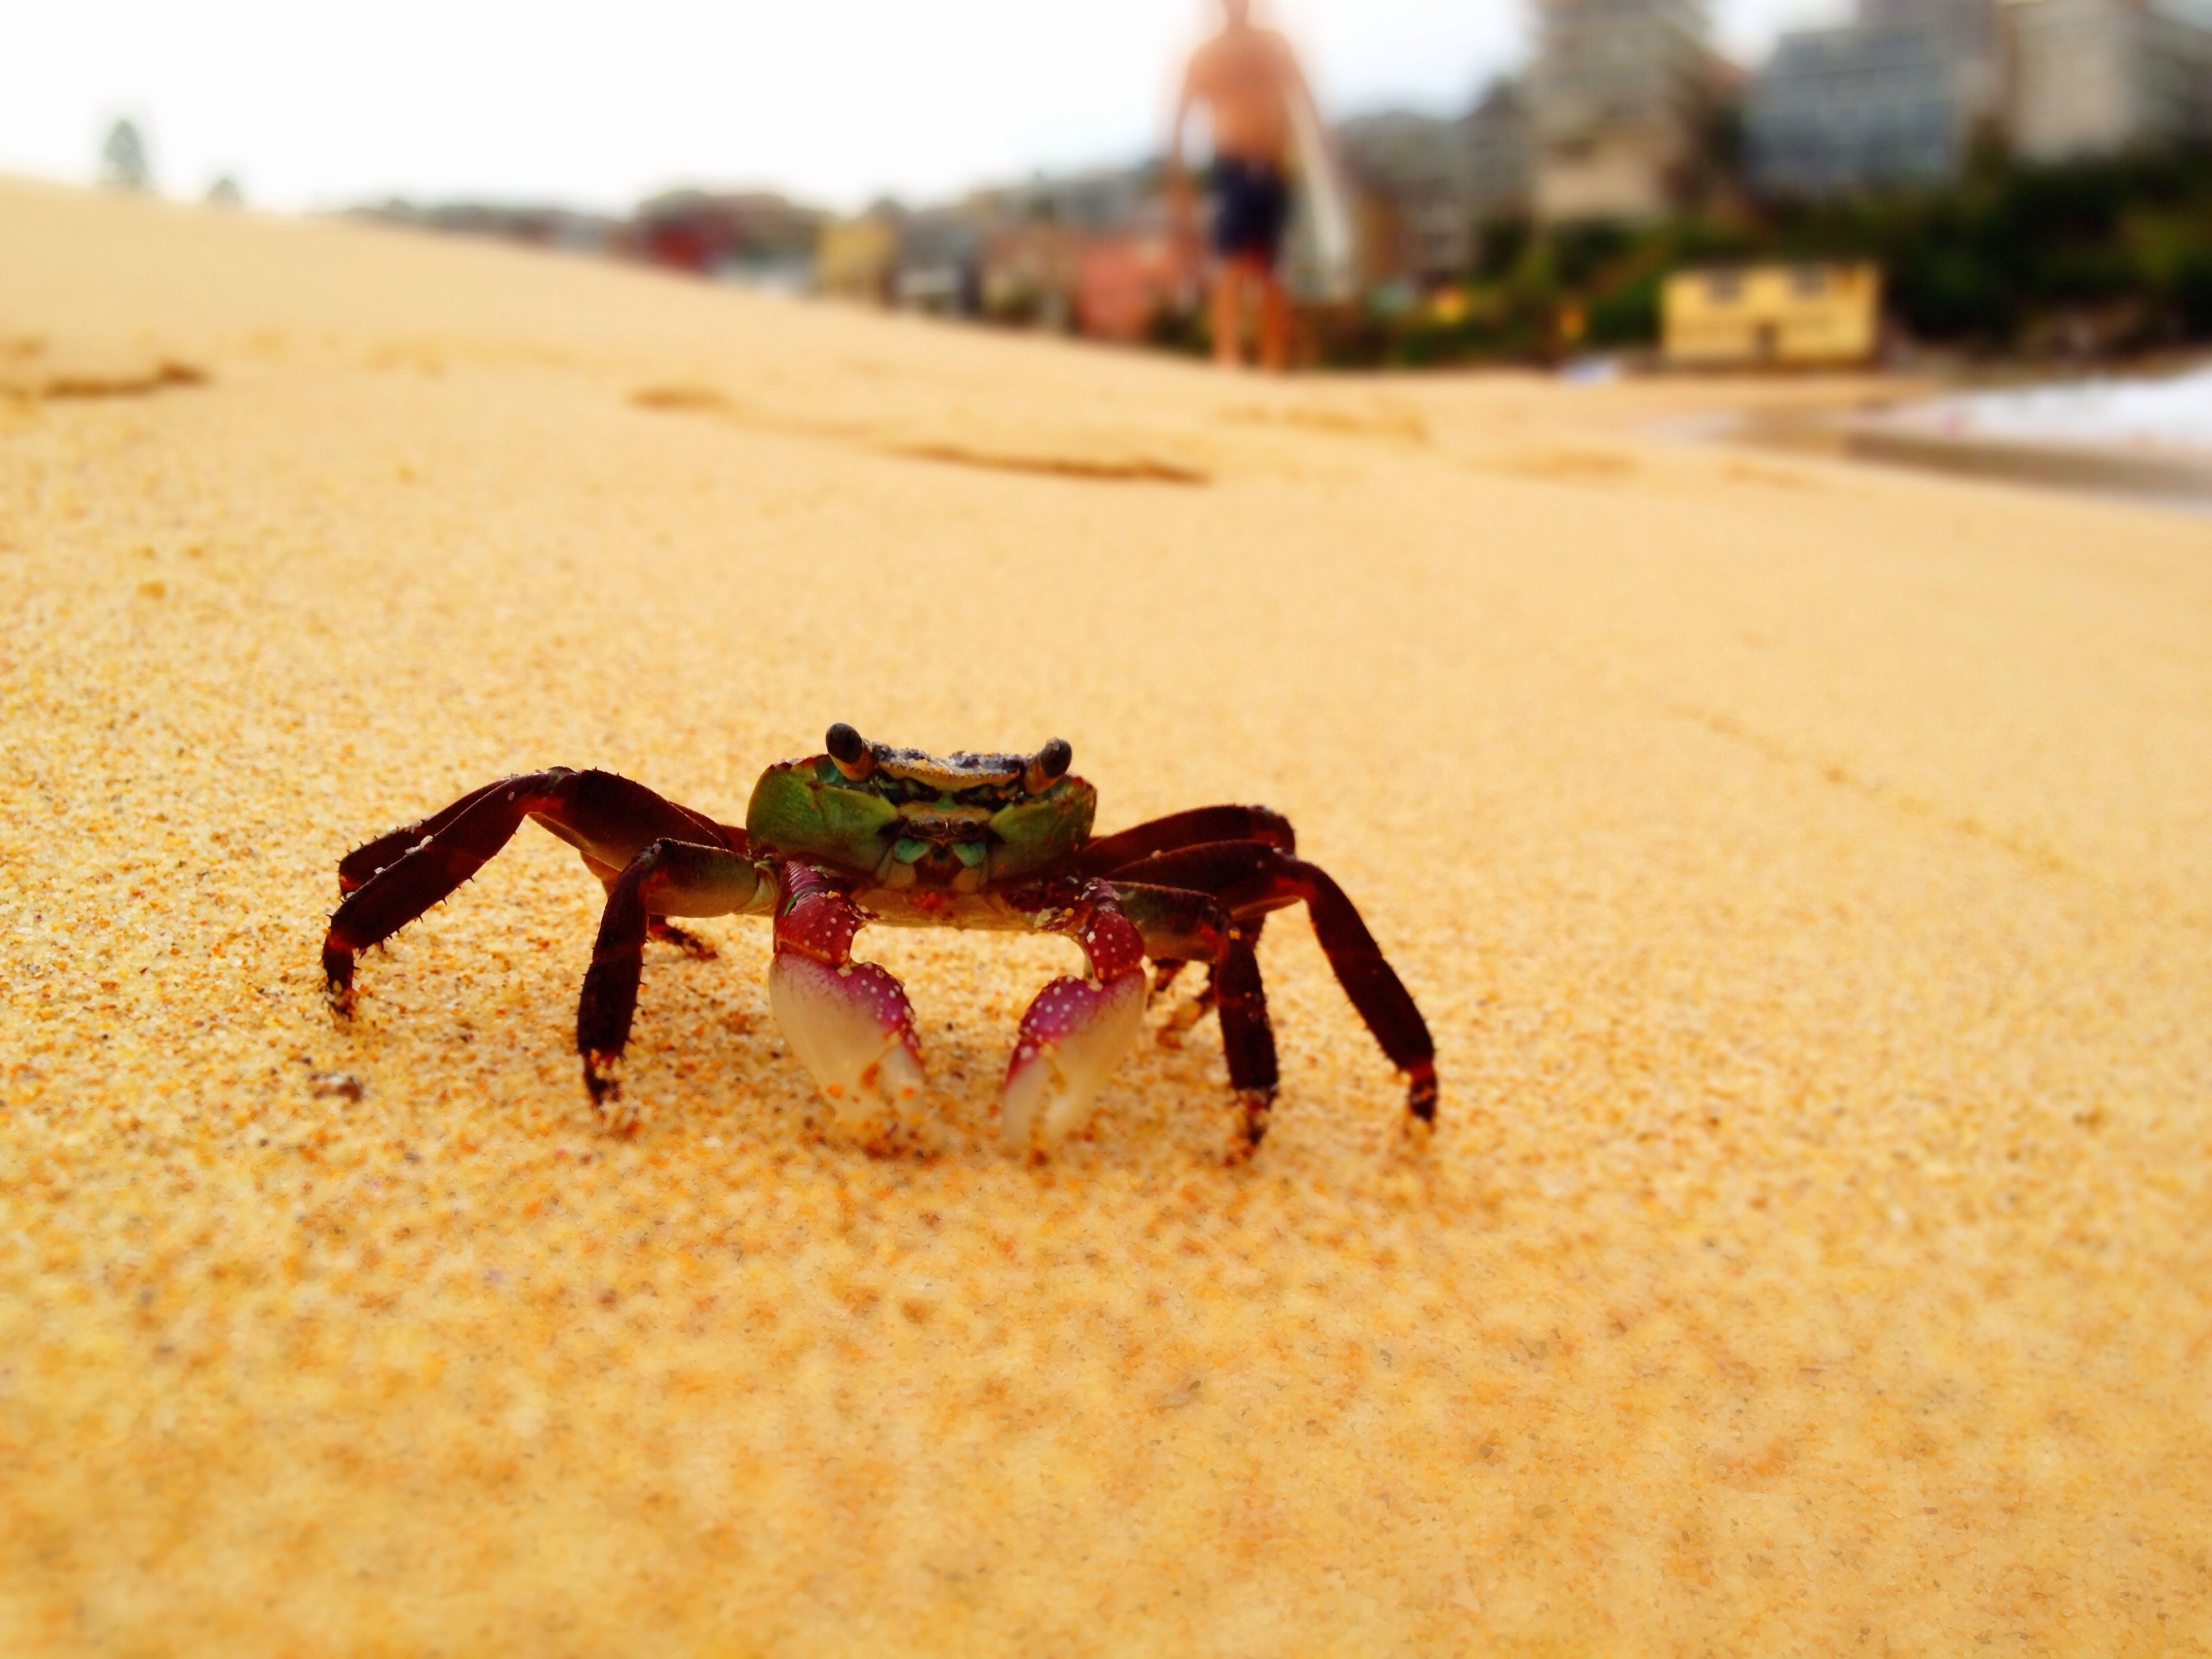 animal themes, one animal, animals in the wild, insect, sand, wildlife, selective focus, focus on foreground, full length, beach, close-up, nature, zoology, surface level, day, outdoors, no people, crab, sunlight, dead animal